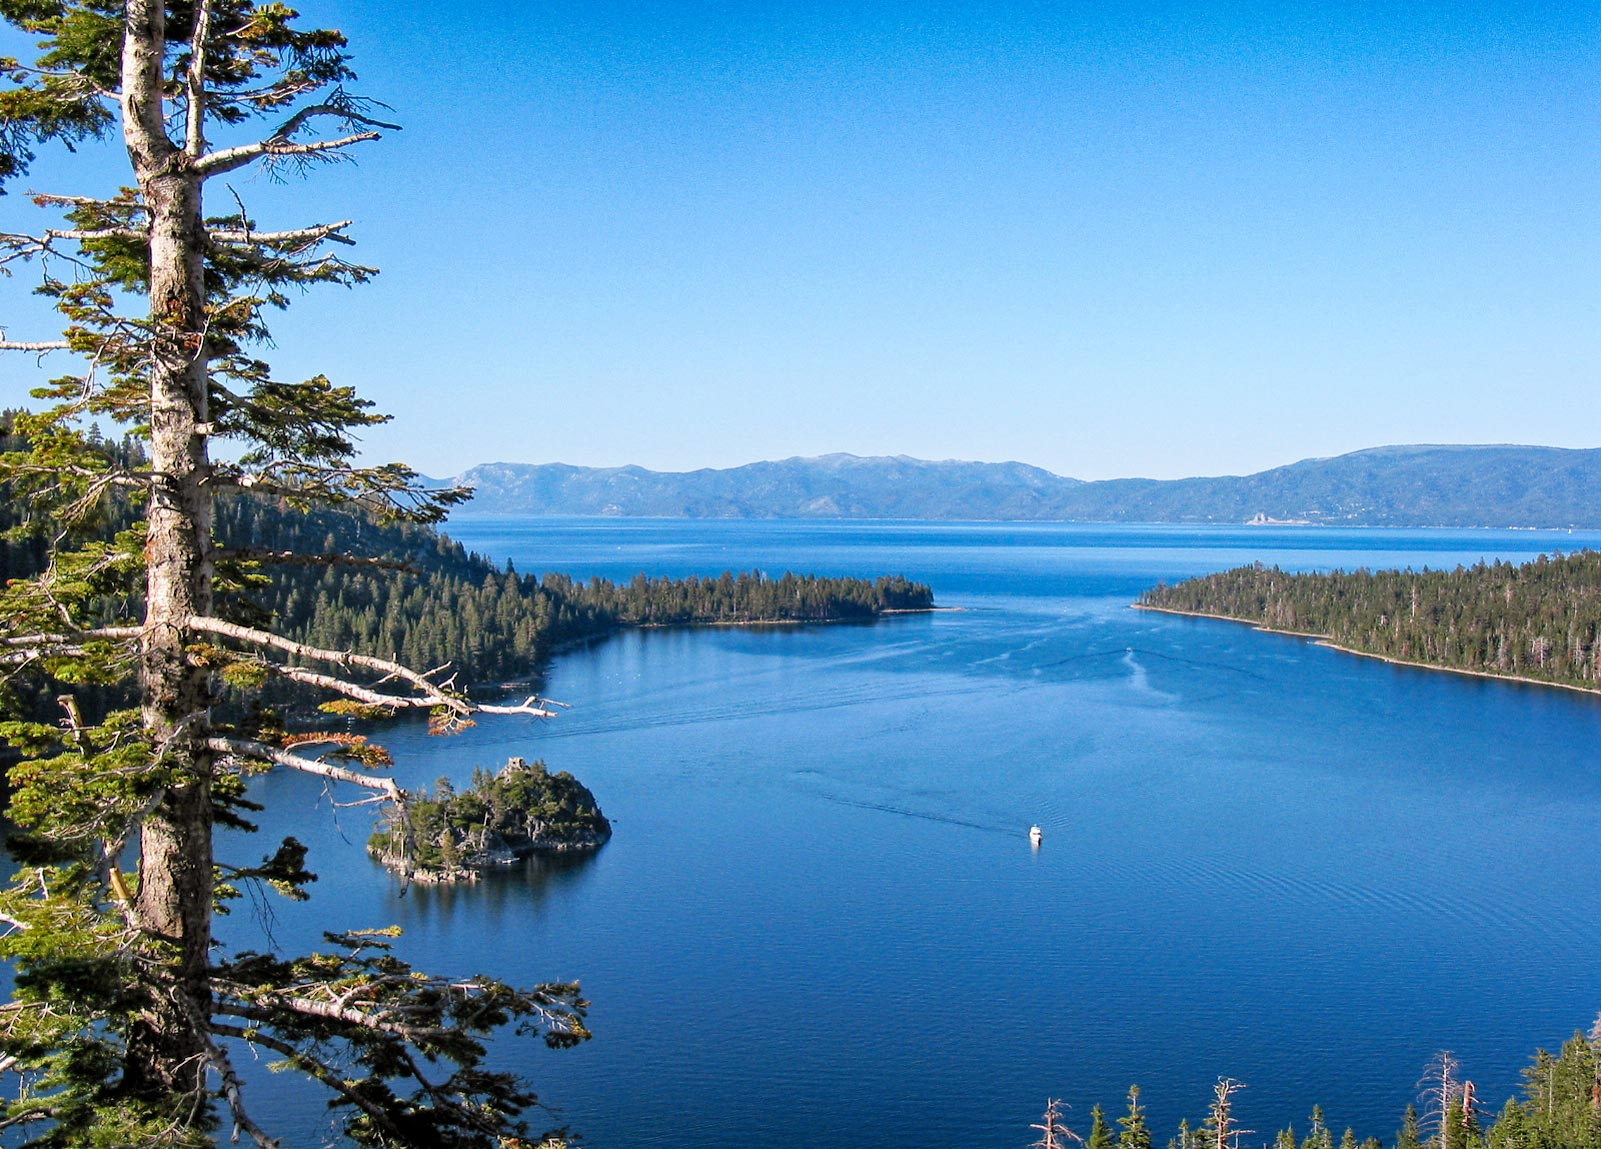 Lake Tahoe - Lake Tahoe California